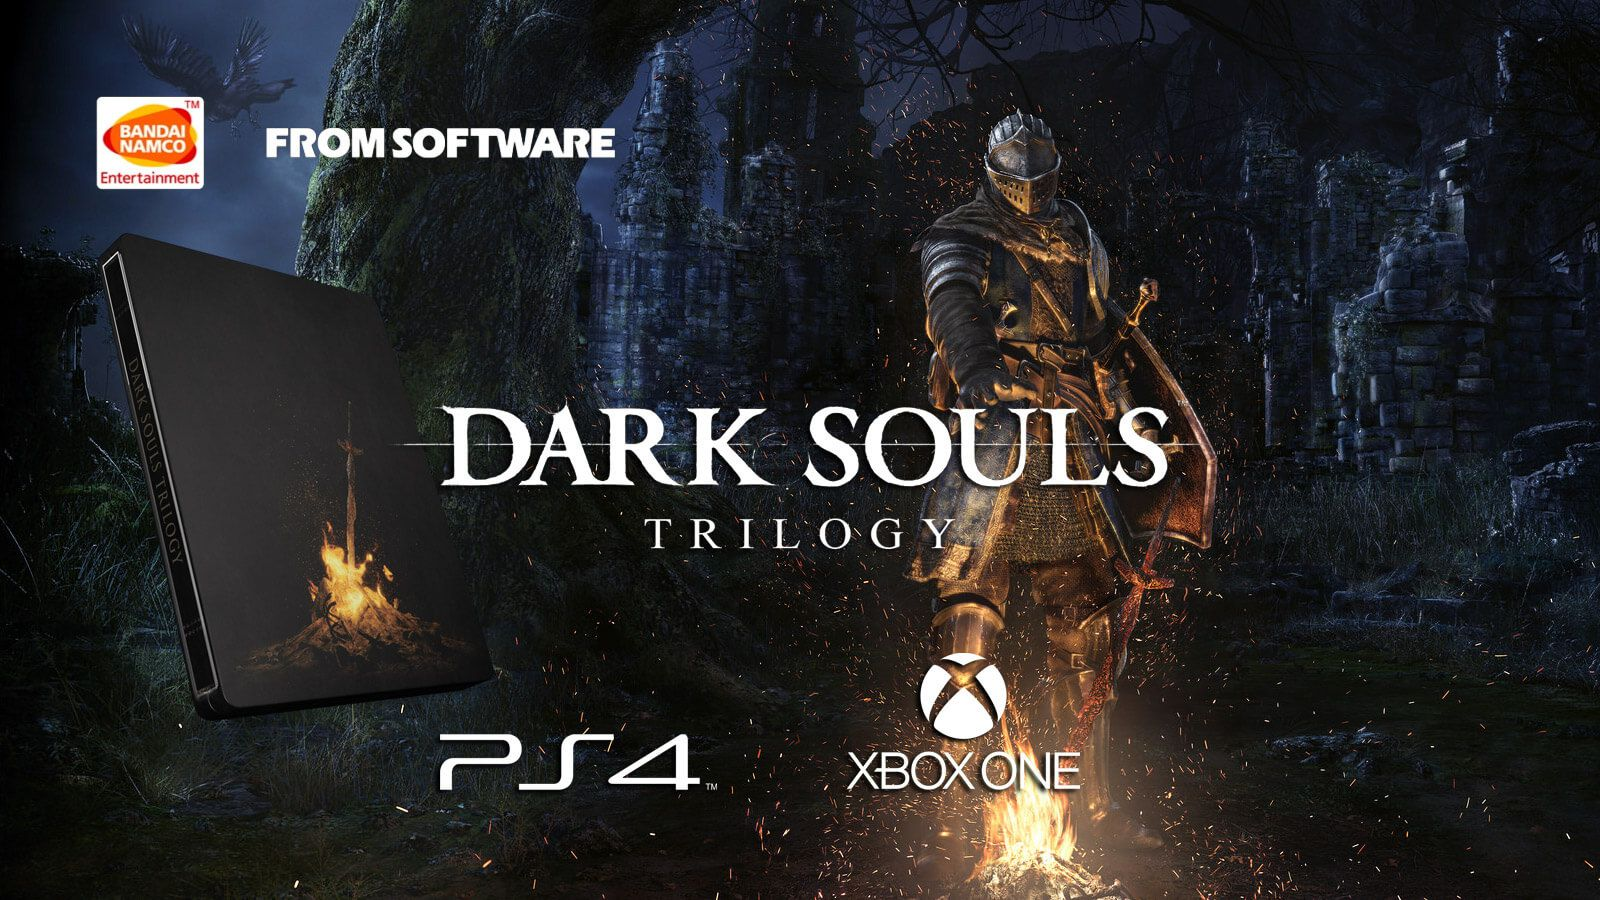 Dark Souls Trilogy arriverà anche in Italia? Aperti i preordini su Amazon.it